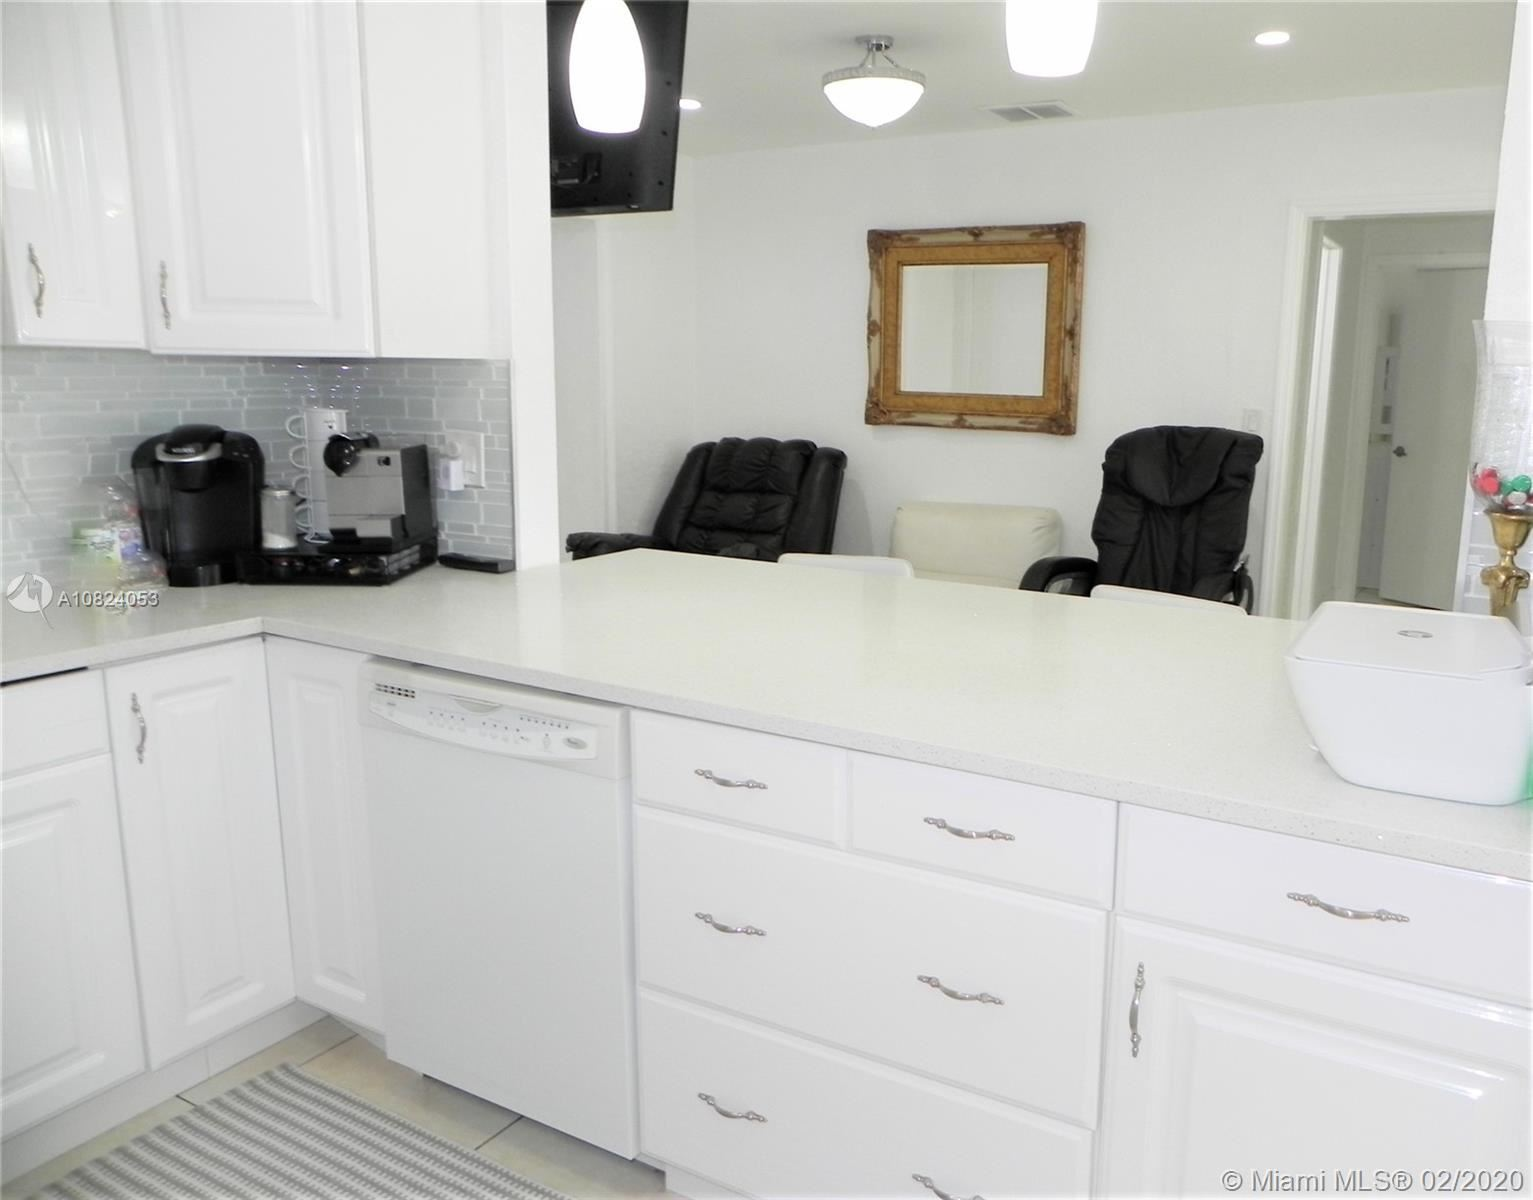 Photo 4 of Listing MLS a10824053 in 1531 Johnson St Hollywood FL 33020